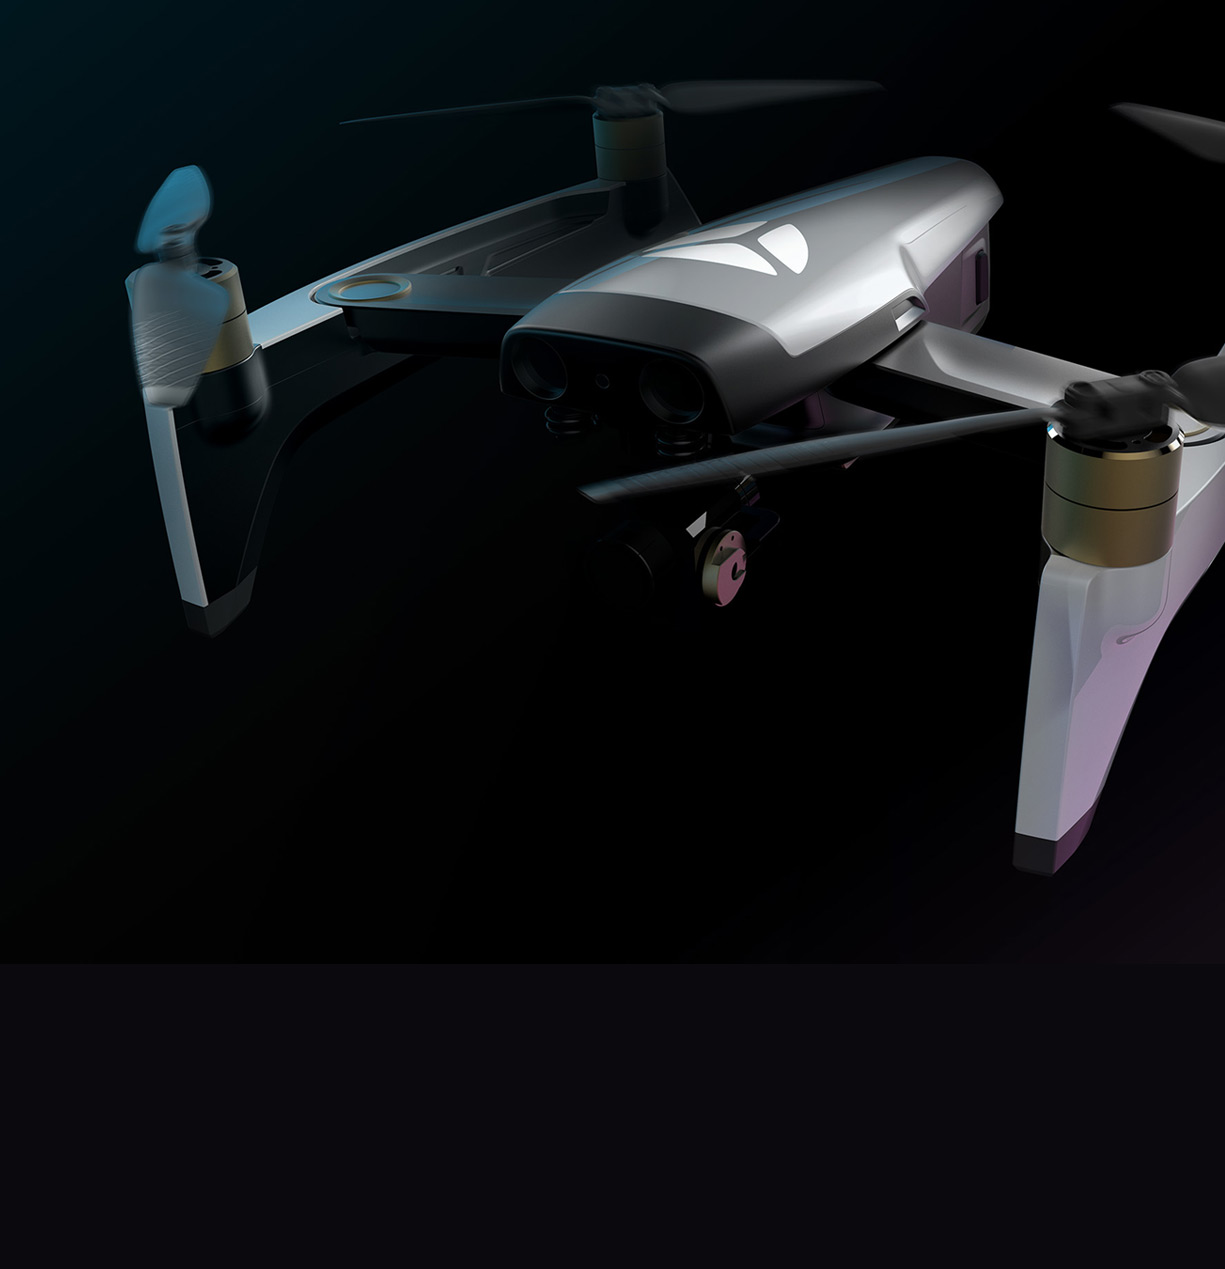 yuneec drone from the front